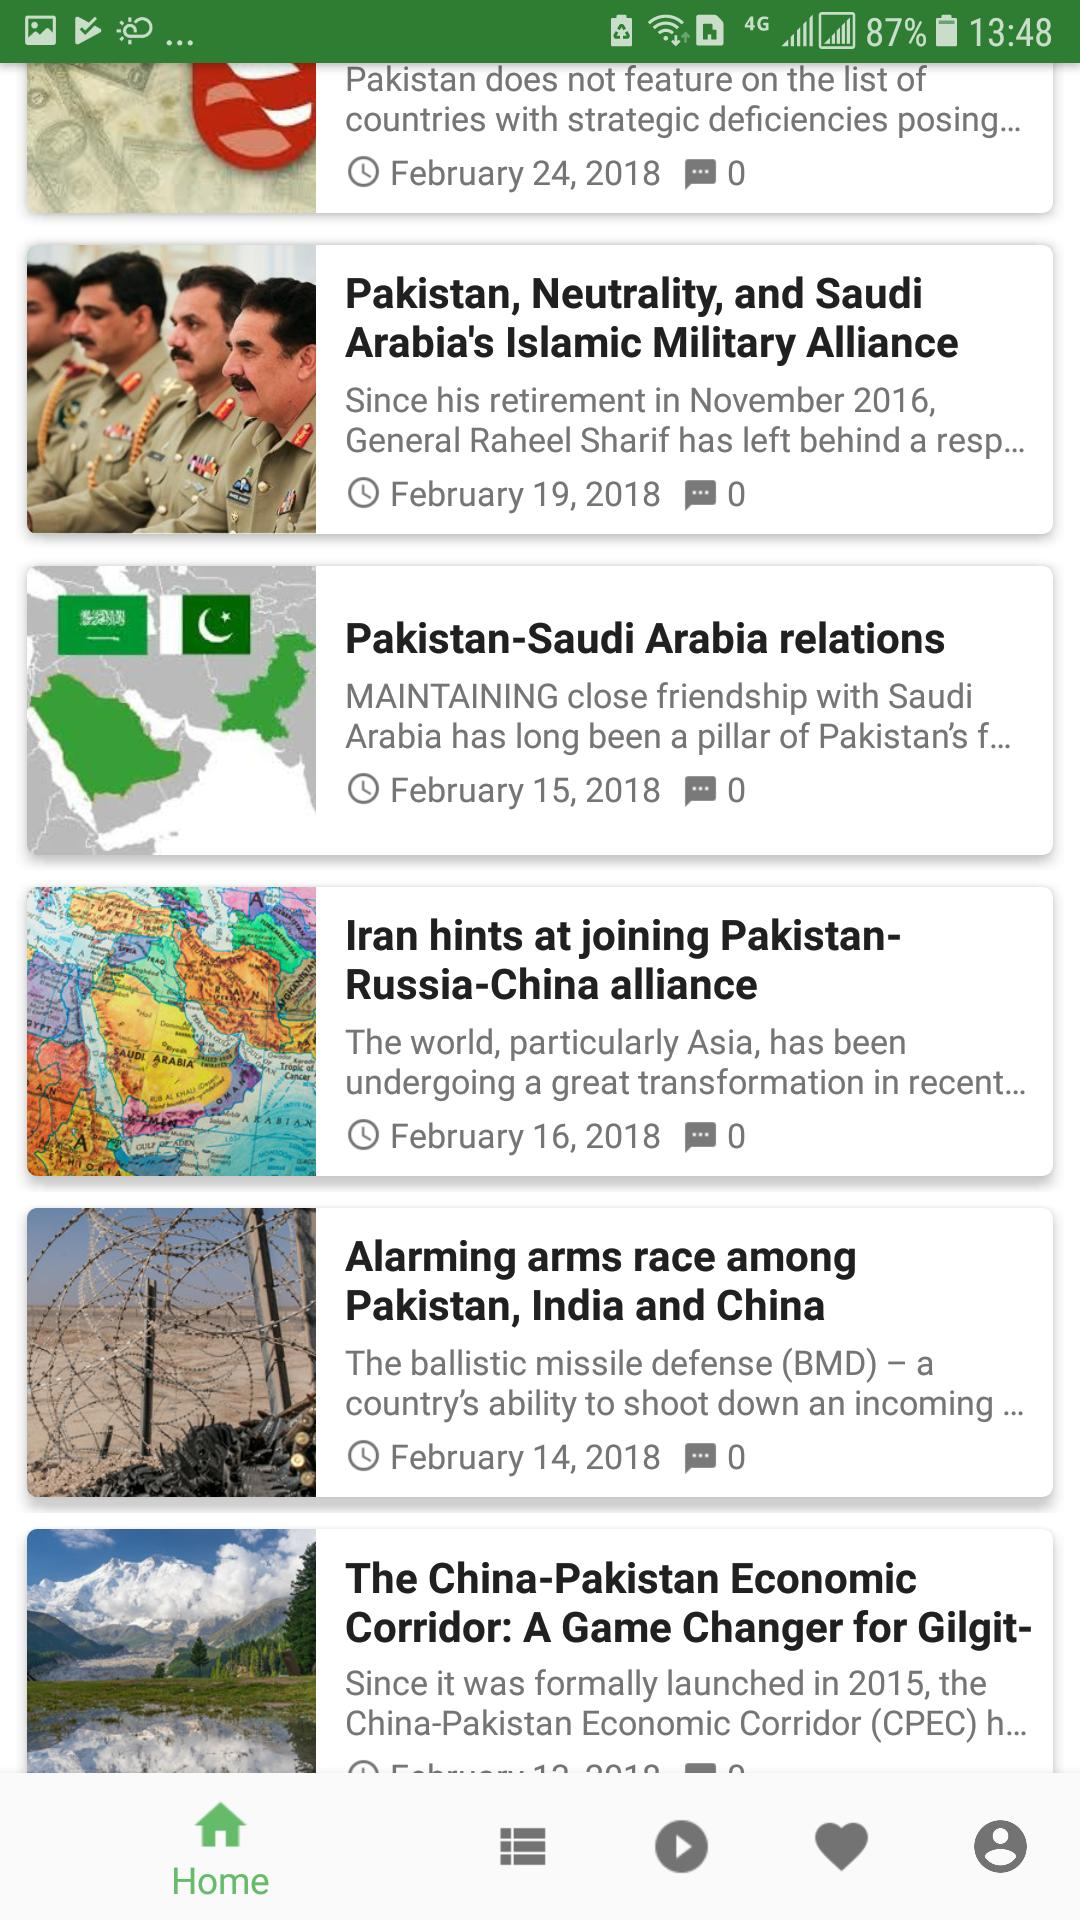 Pakistan Current Affairs for Android - APK Download